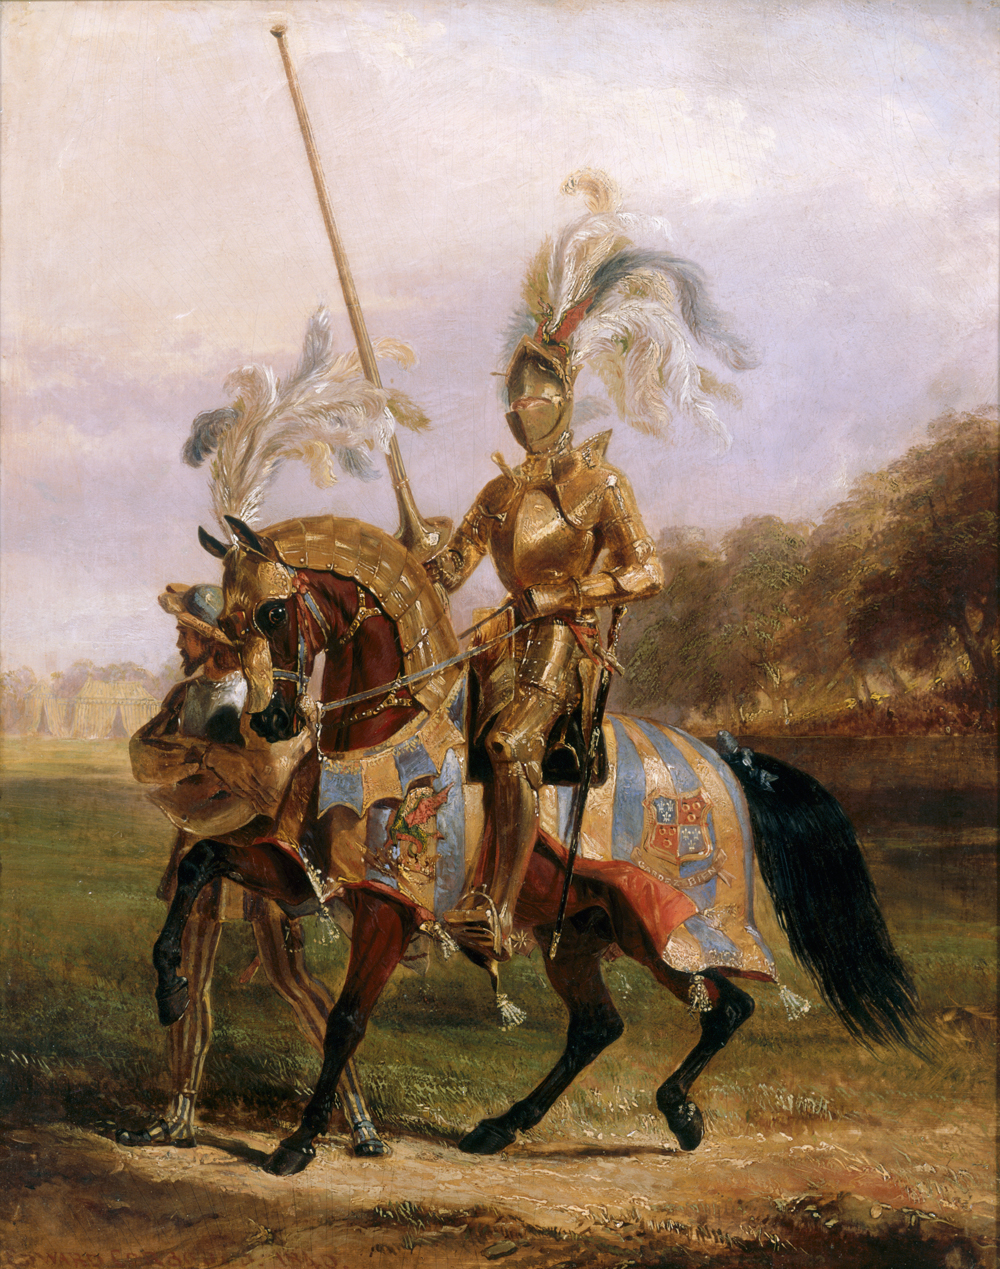 Corbould1